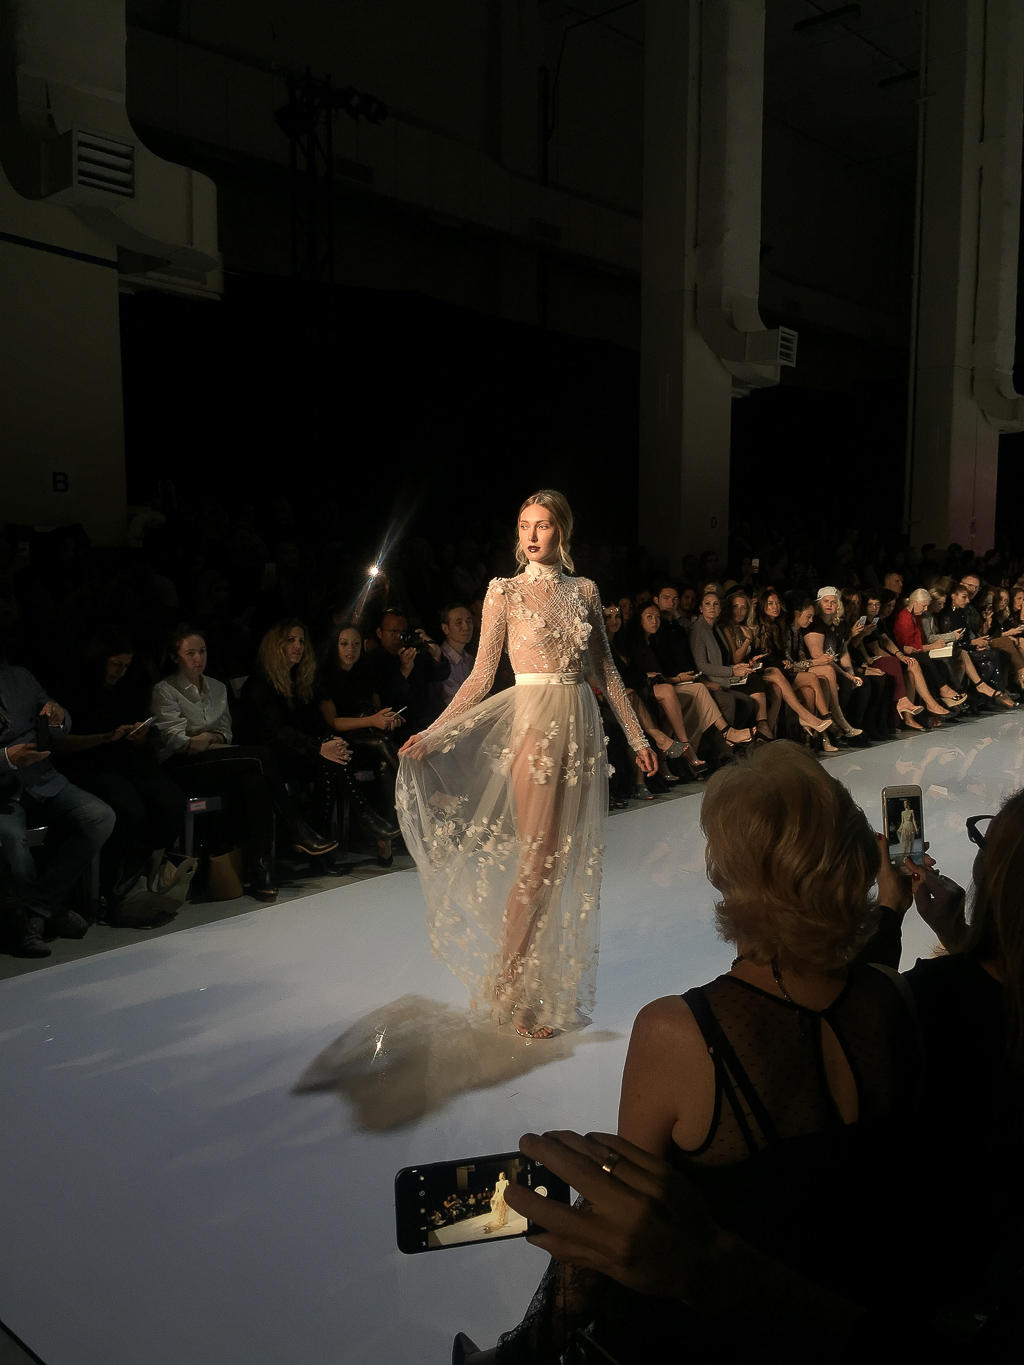 Read about my Redken Ready Experience at Toronto Women's Fashion Week with 1 Milk 2 Sugars!